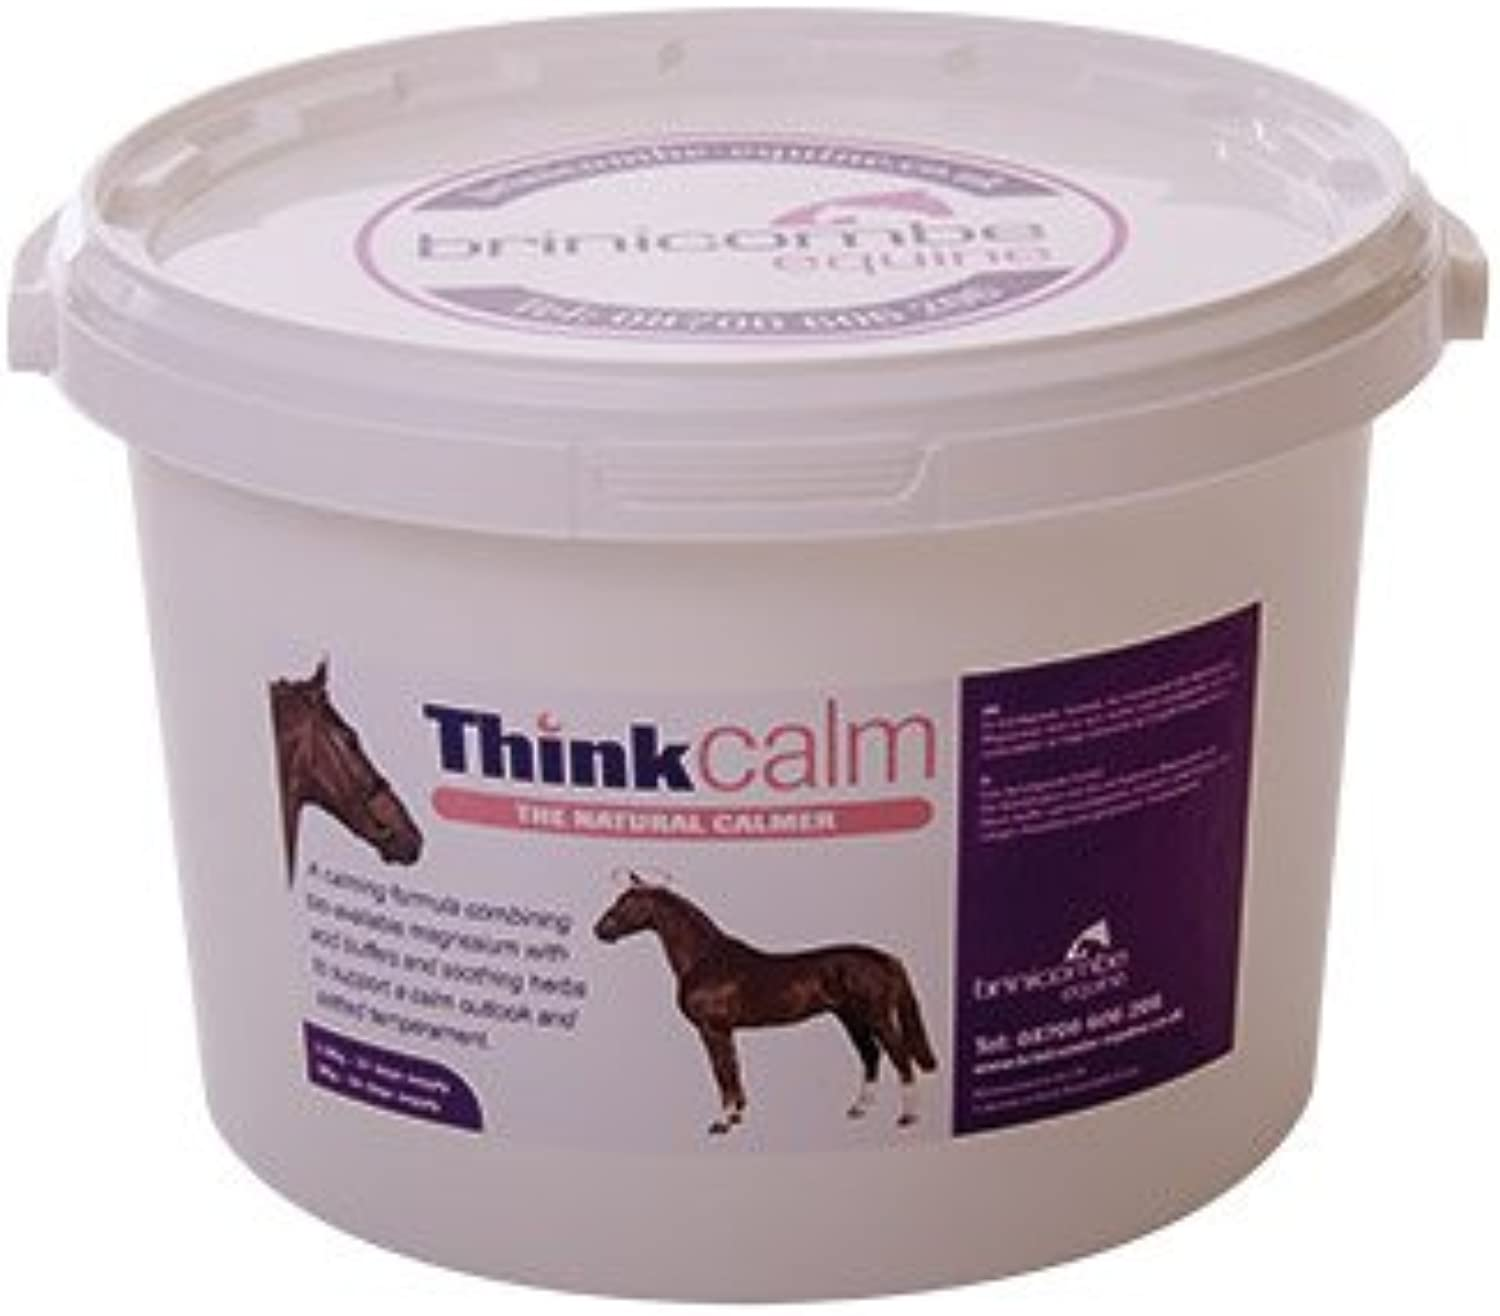 Binicombe Equine Thinkcalm  A Natural Calmer For Horses  2.5kg